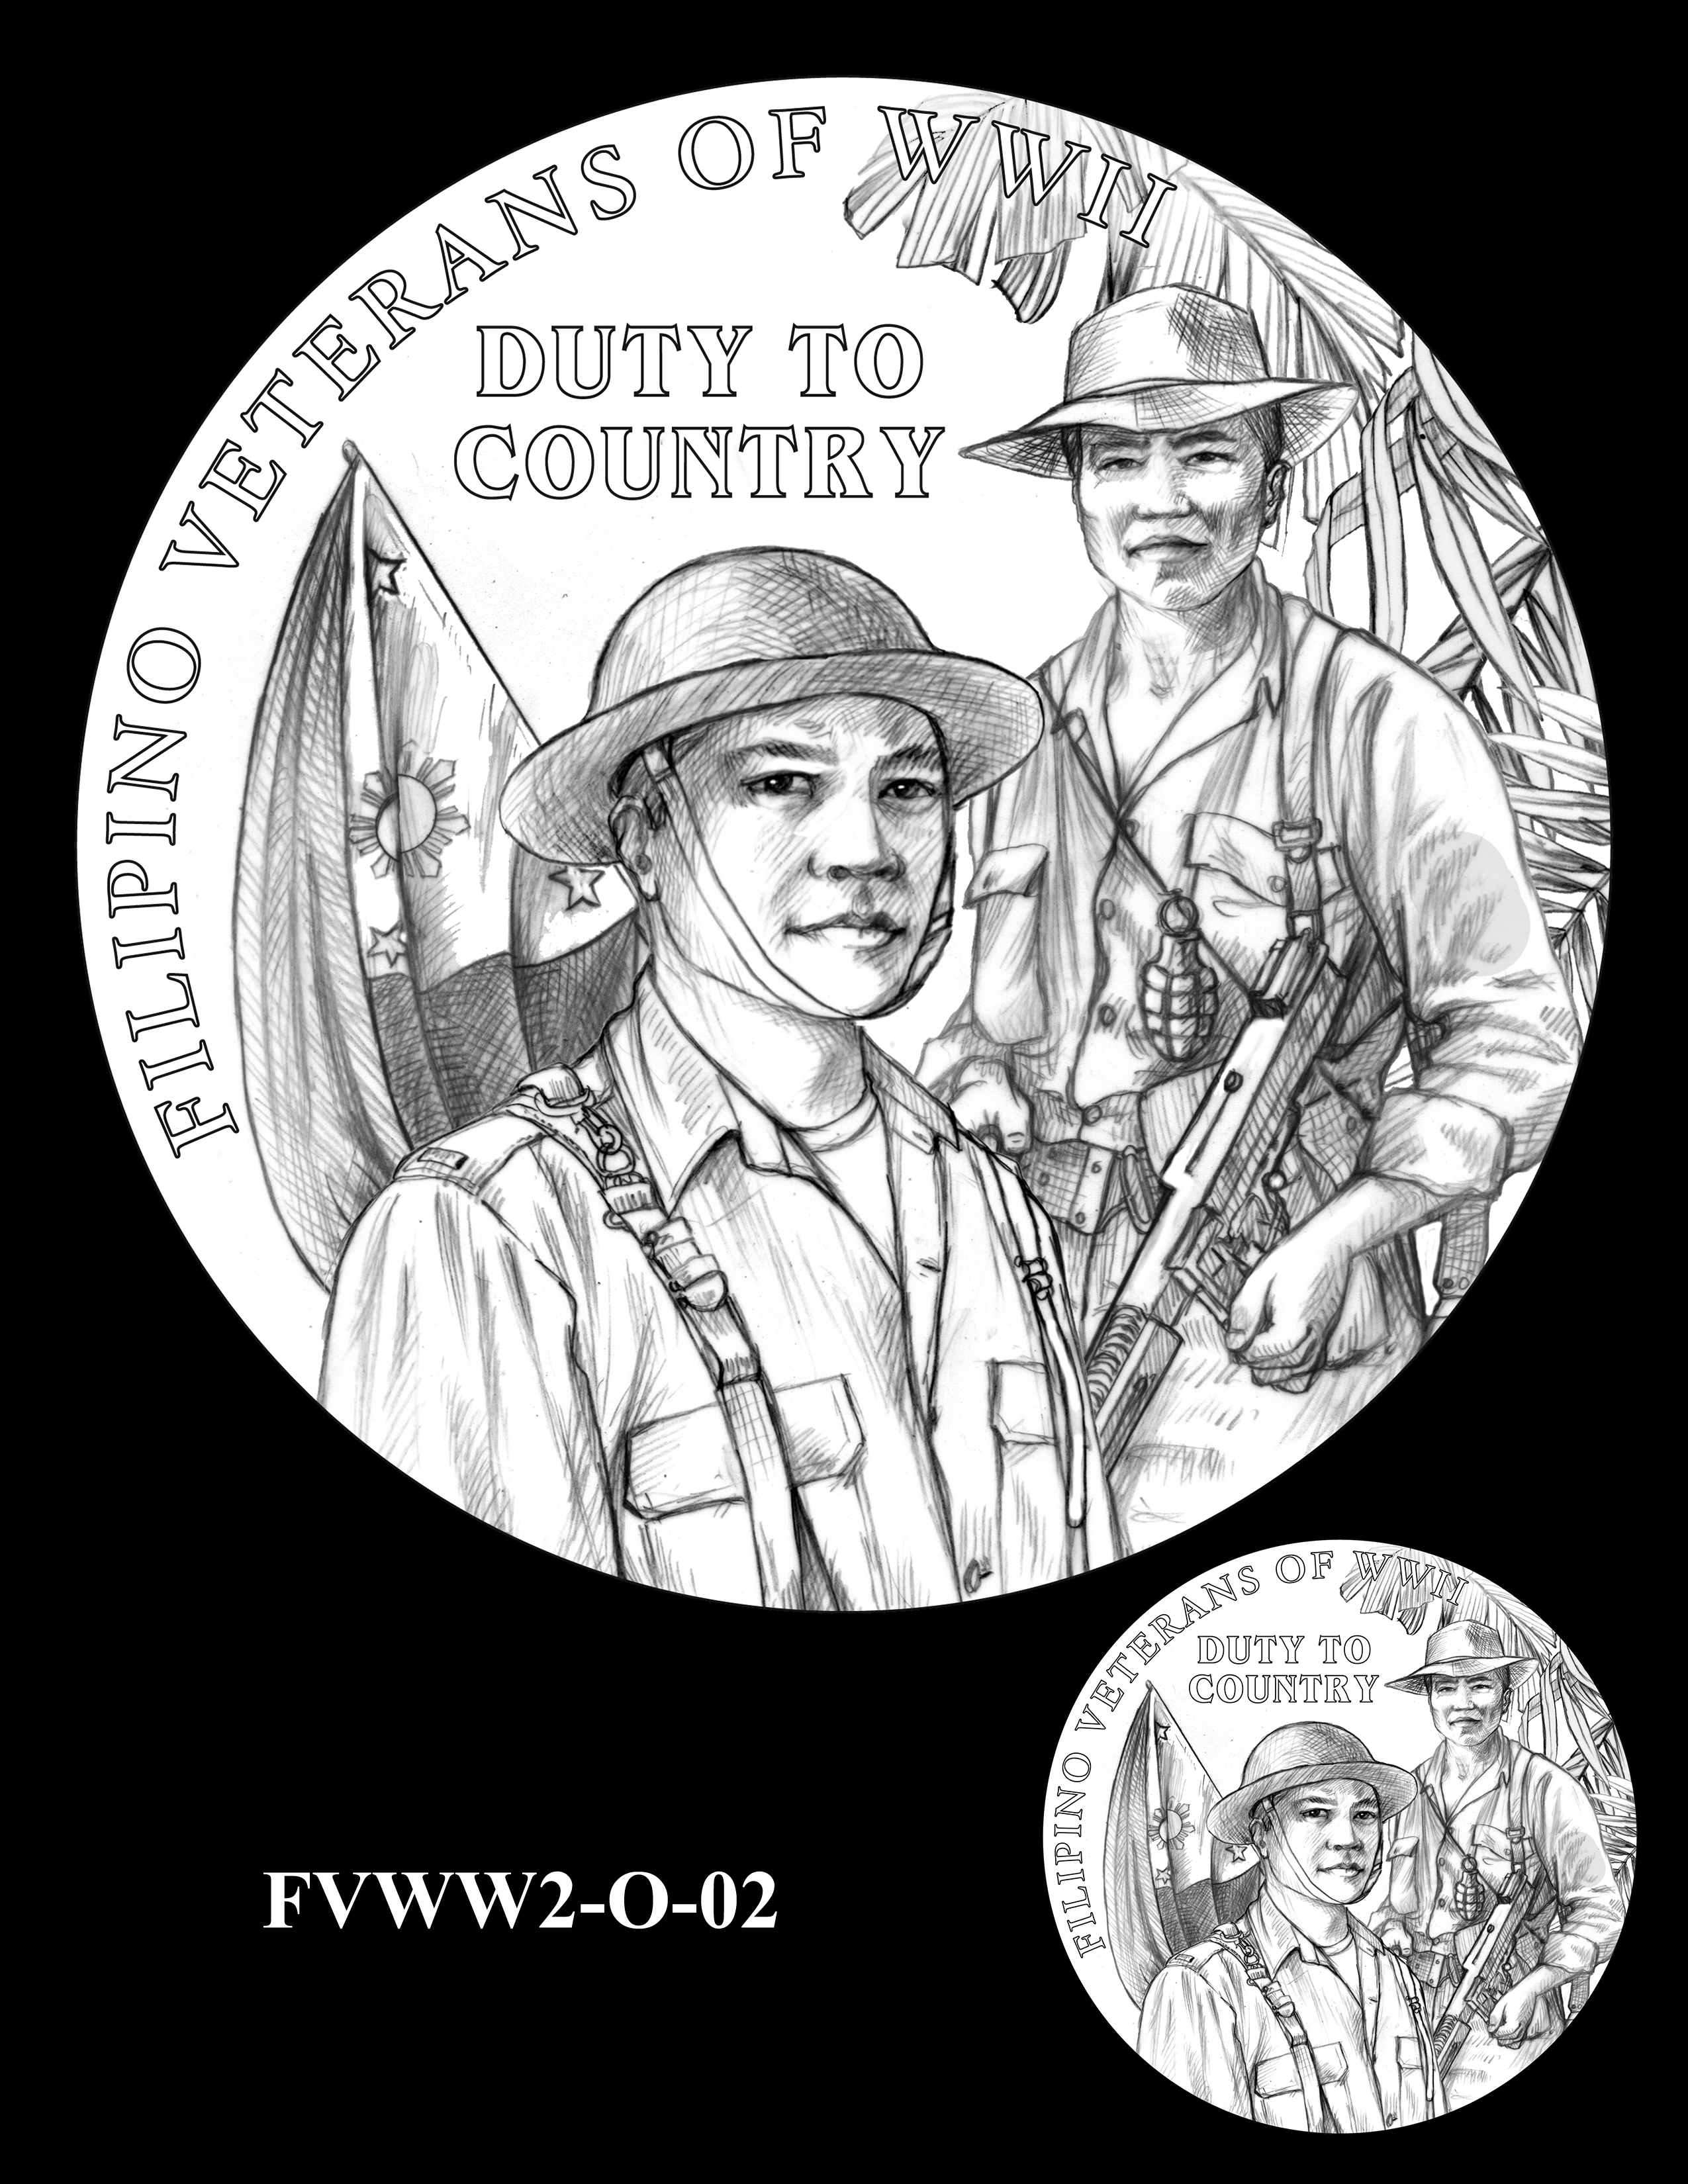 FVWW2-O-02 -- Filipino Veterans of World War II Congressional Gold Medal